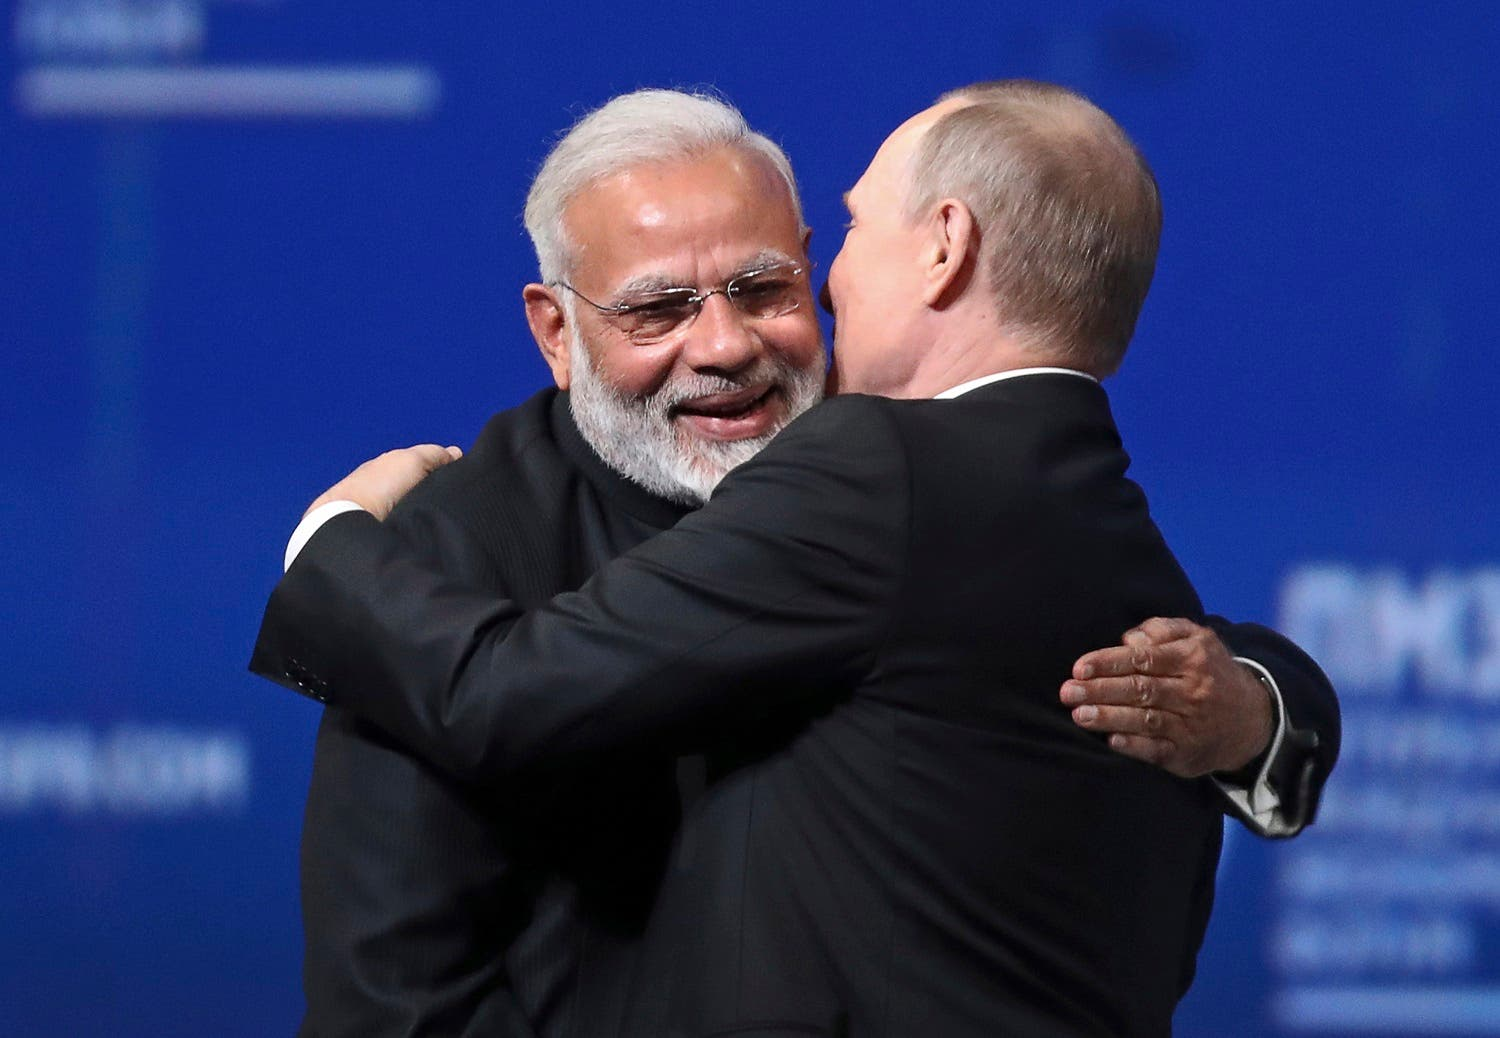 Vladimir Putin and Narendra Modi give each other a hug at the St. Petersburg International Economic Forum in St. Petersburg, Russia on June 2, 2017. (AP)